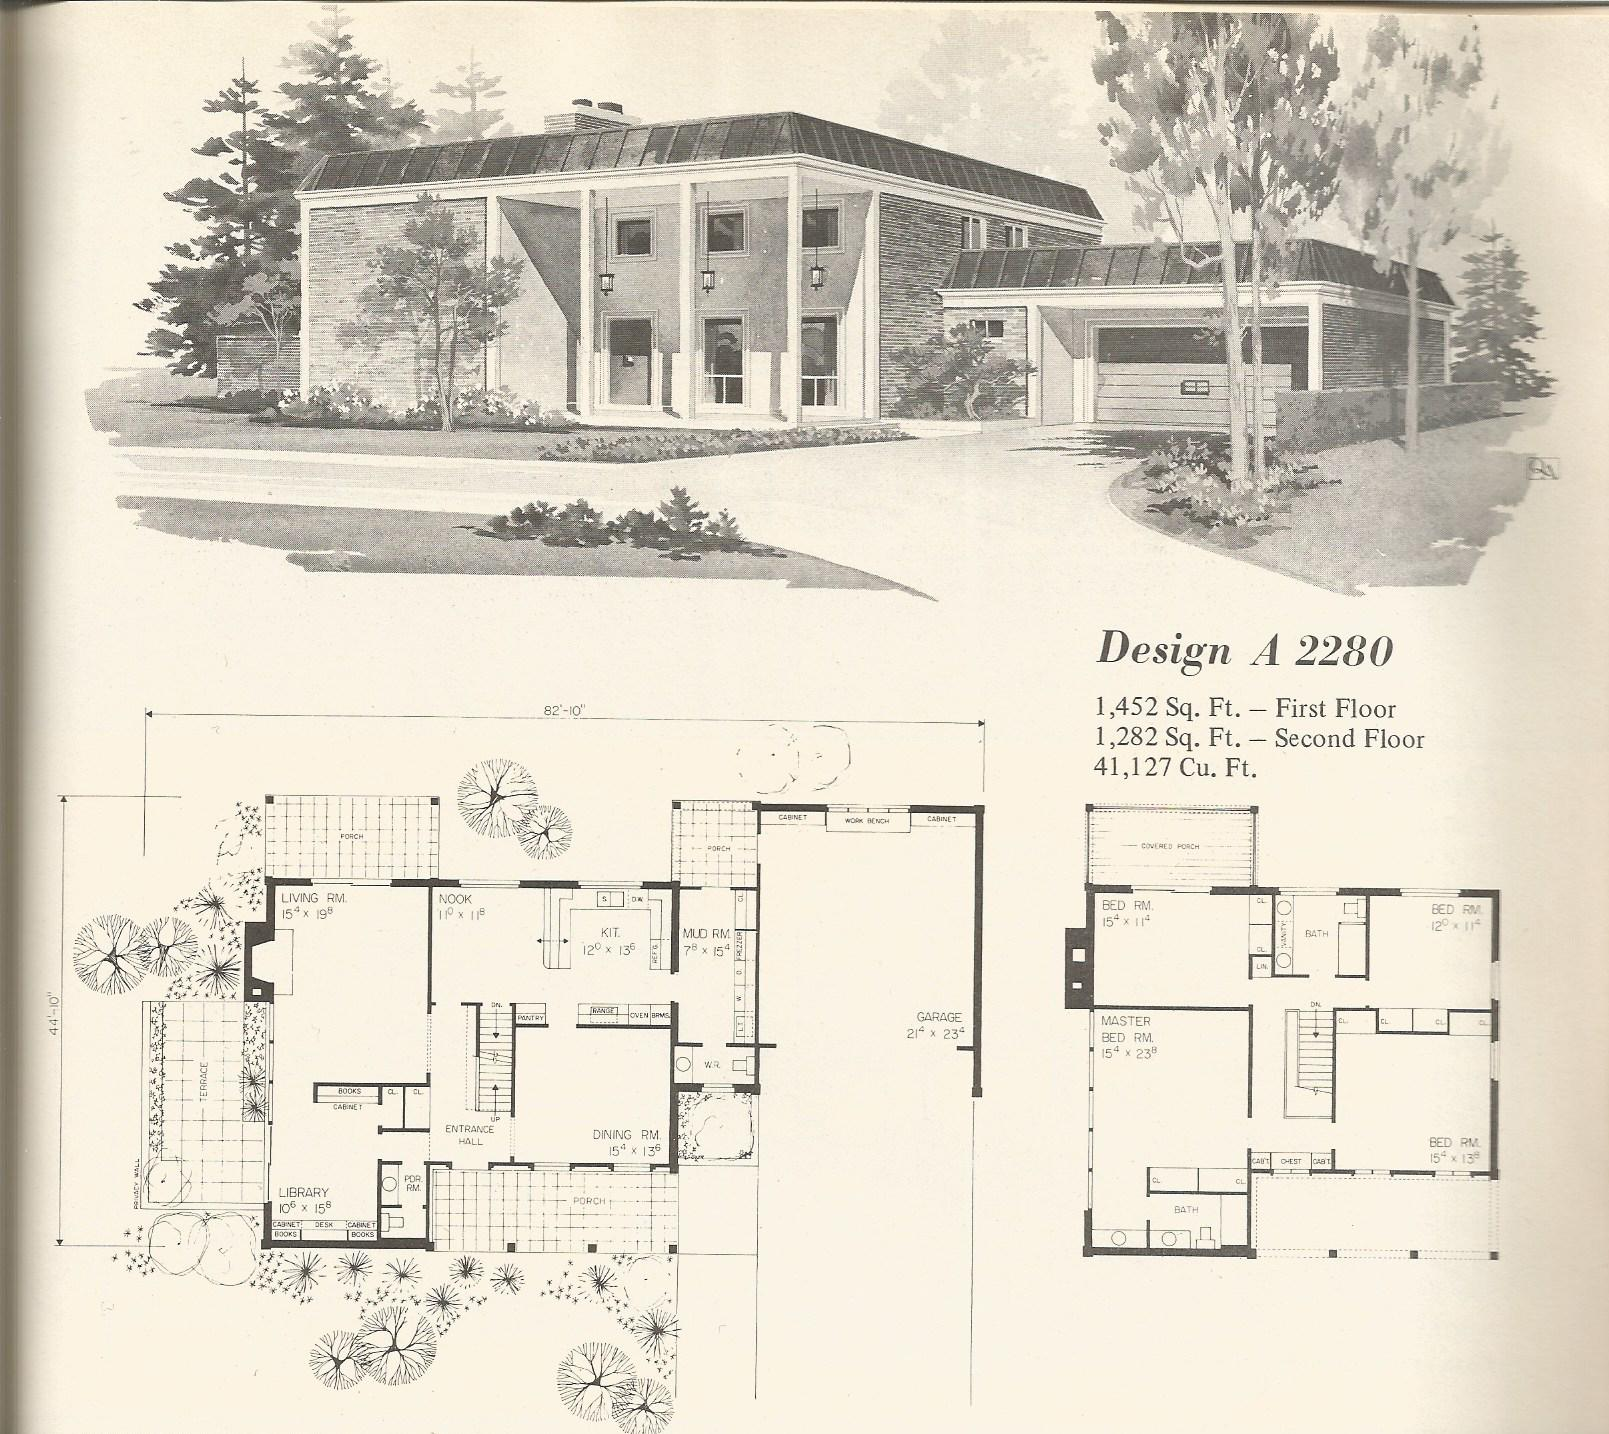 Vintage house plans 2280 antique alter ego for Vintage floor plans